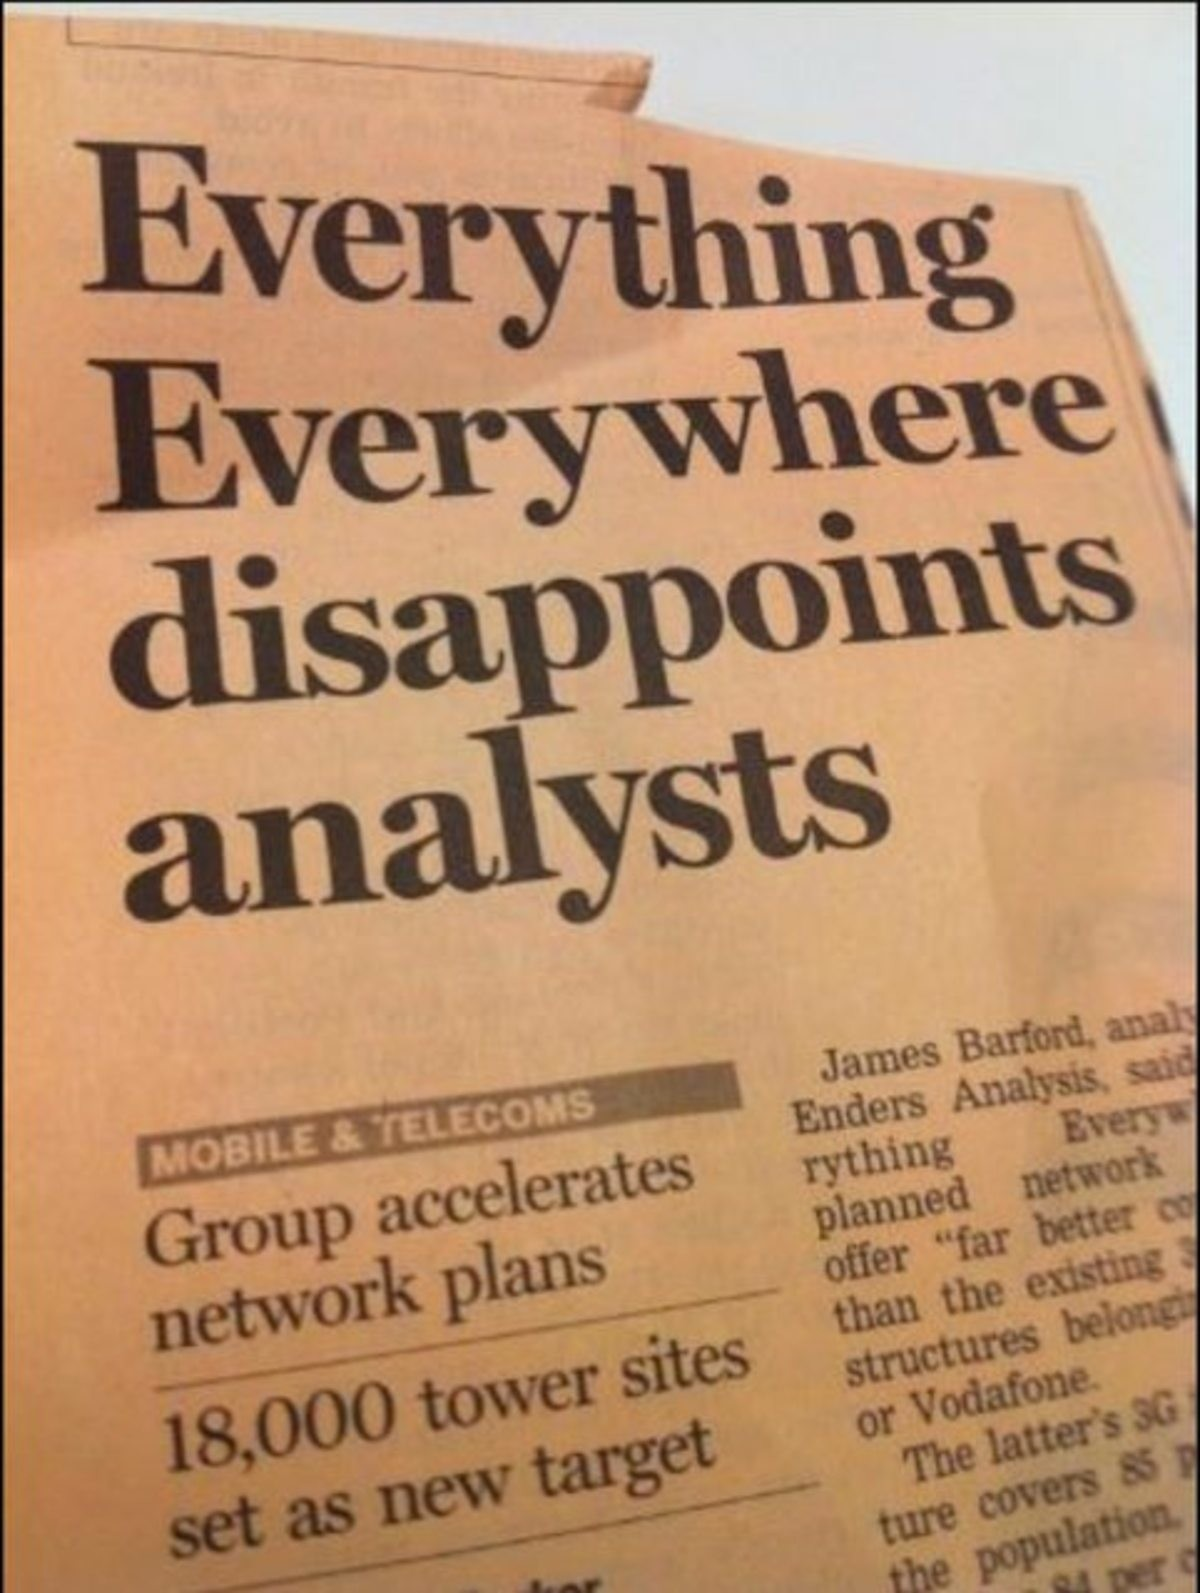 's All Messed Up. .. Everything Everywhere disappoints Everyone on the Internet